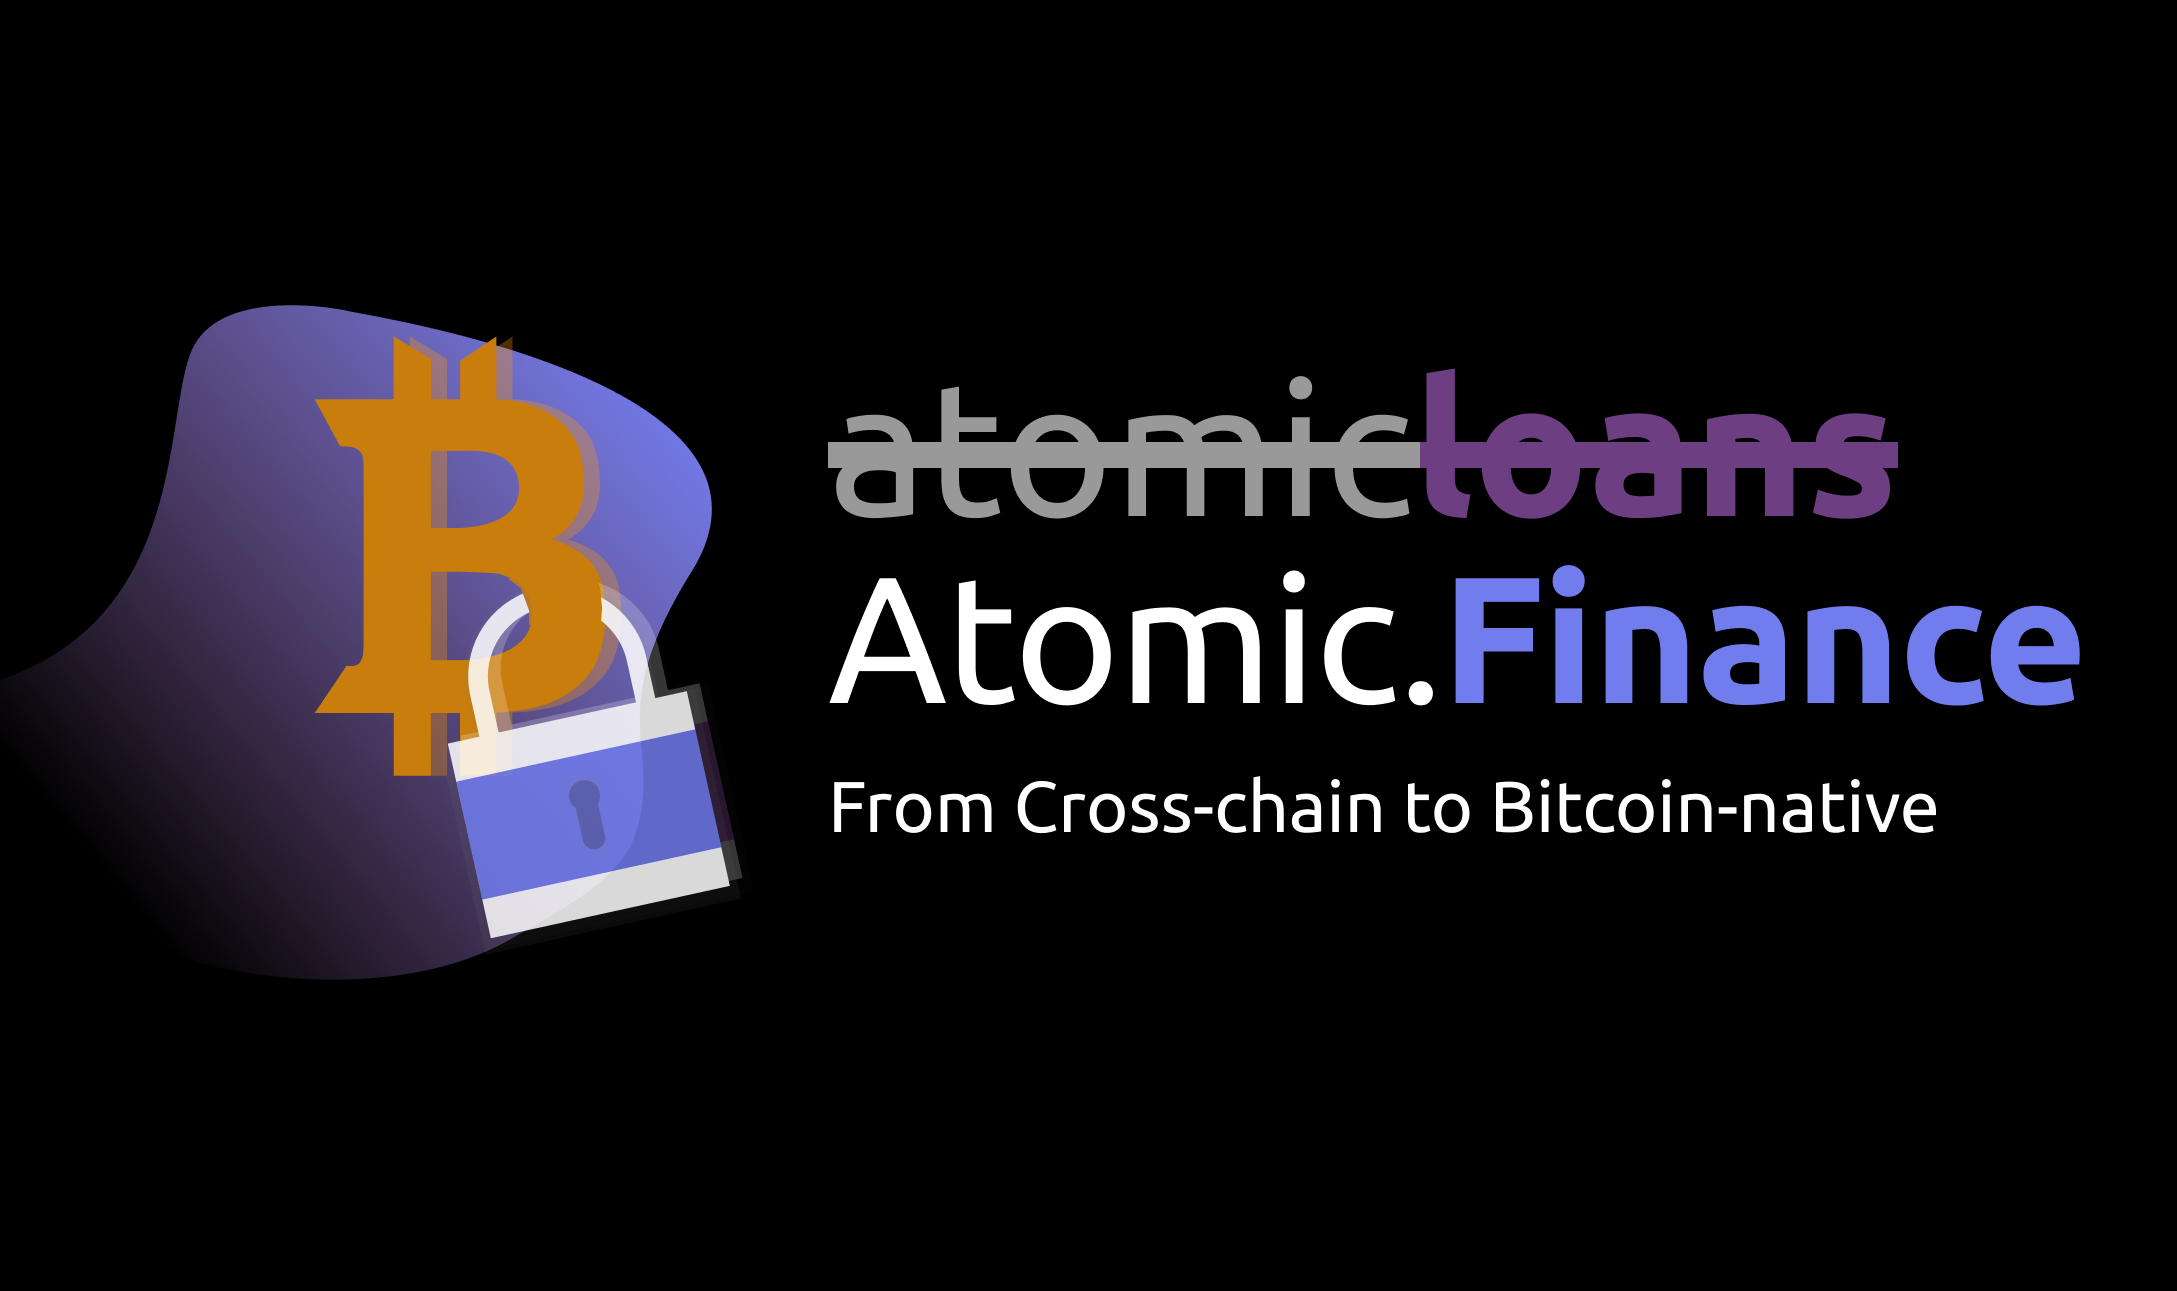 An Atomic Pivot: Going all-in on Bitcoin-native finance.